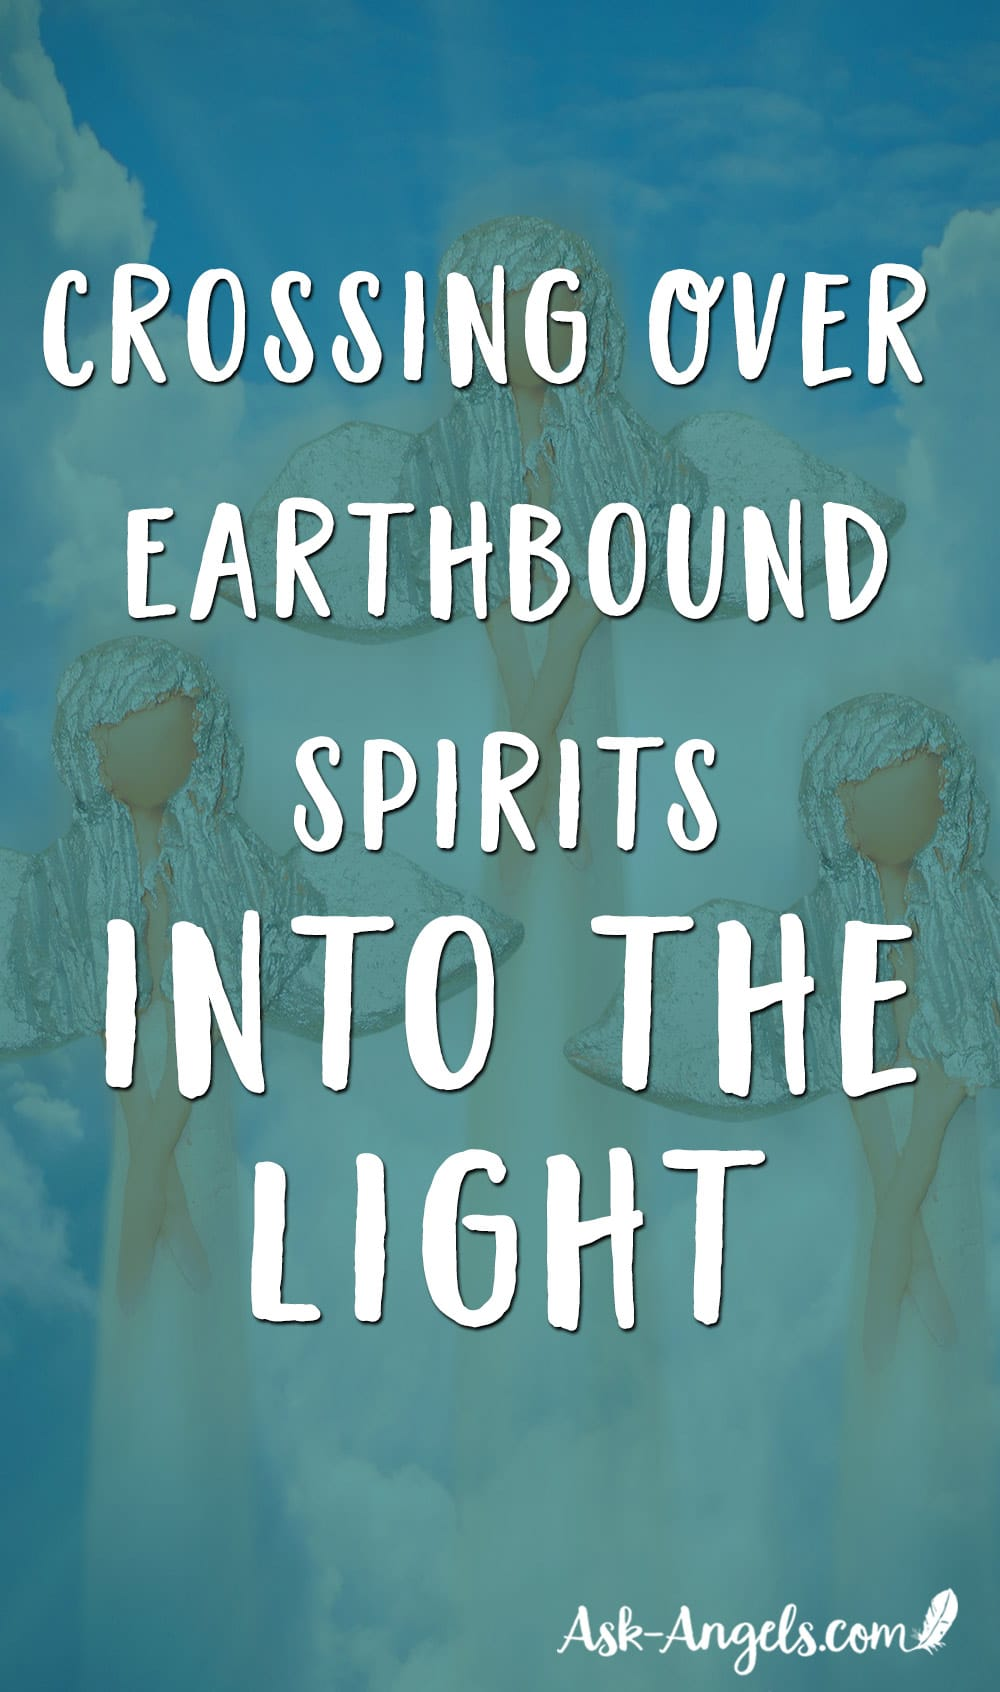 Crossing Over Earthbound Spirits